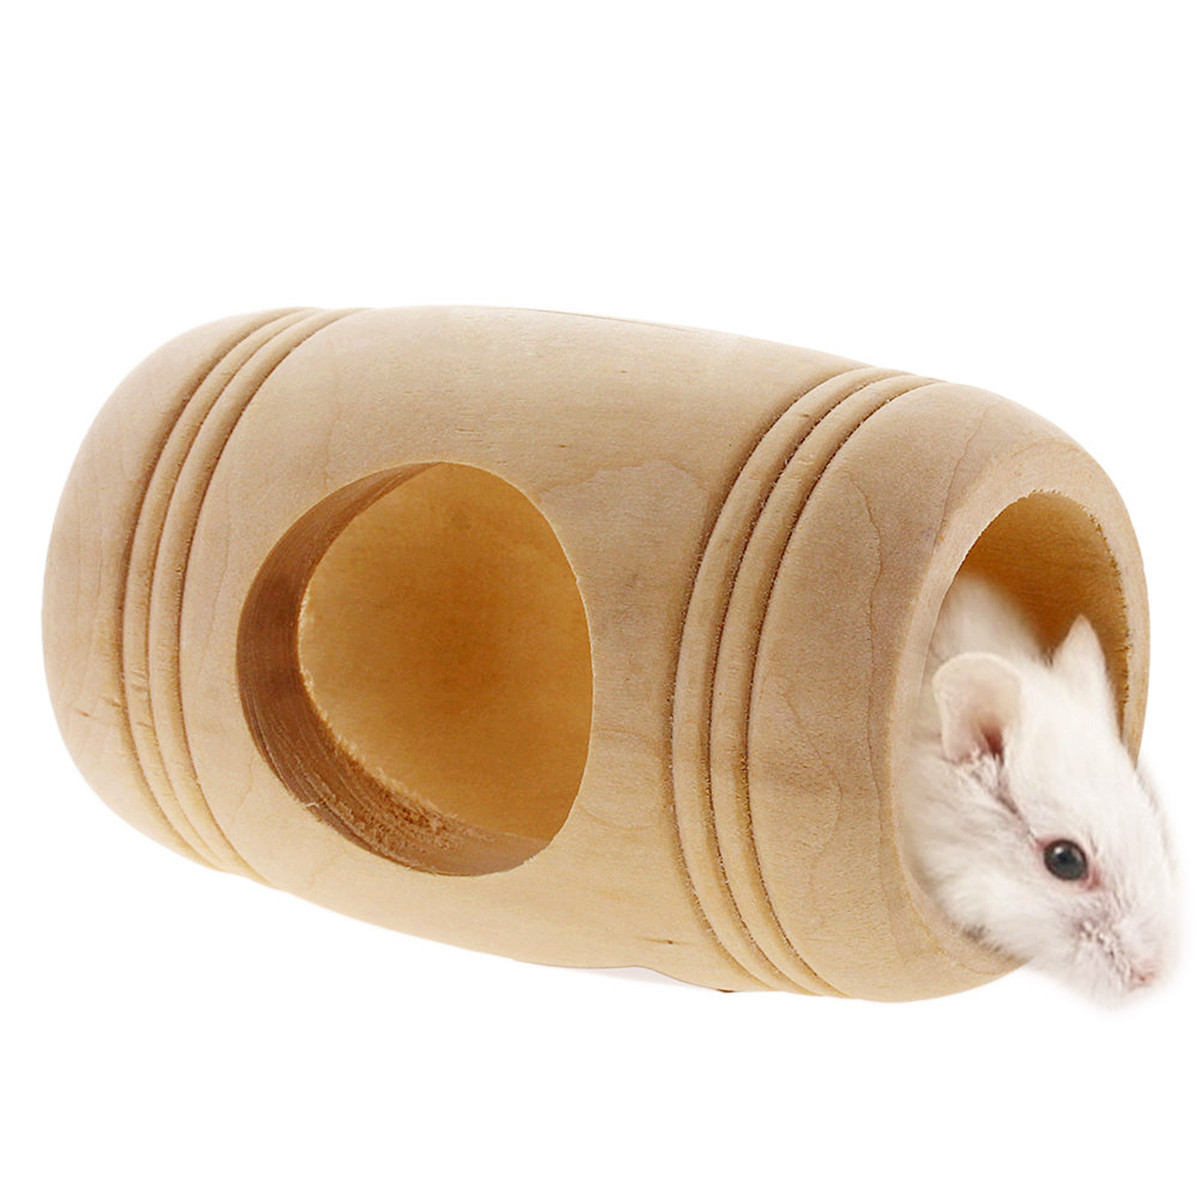 online get cheap house mouse pet aliexpress com alibaba group